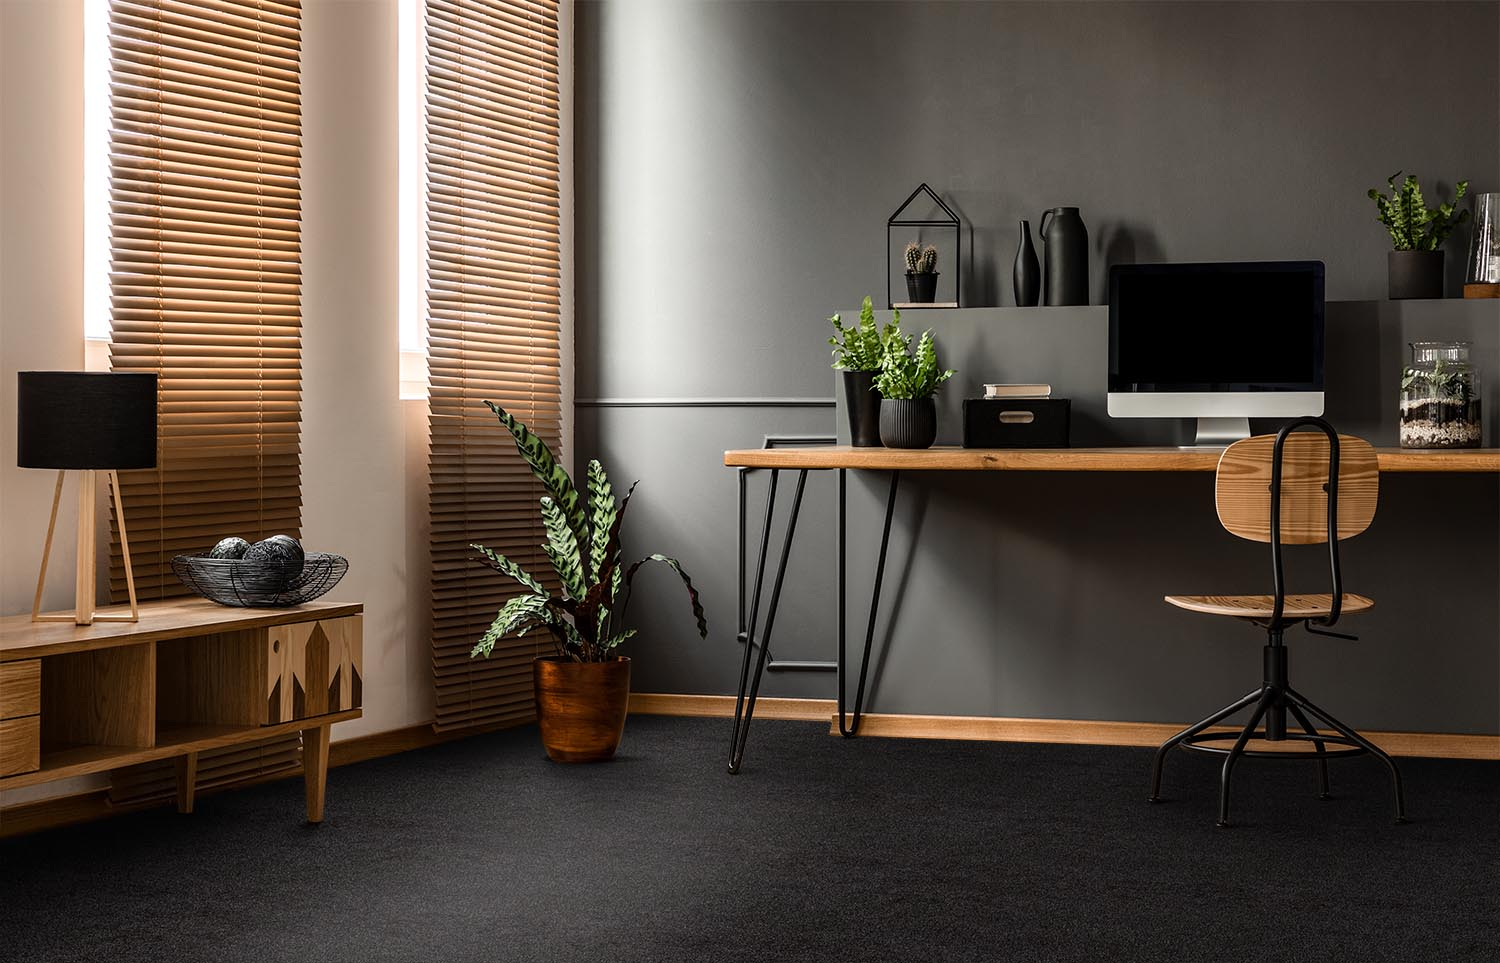 Softology - S201 - Abyss home office